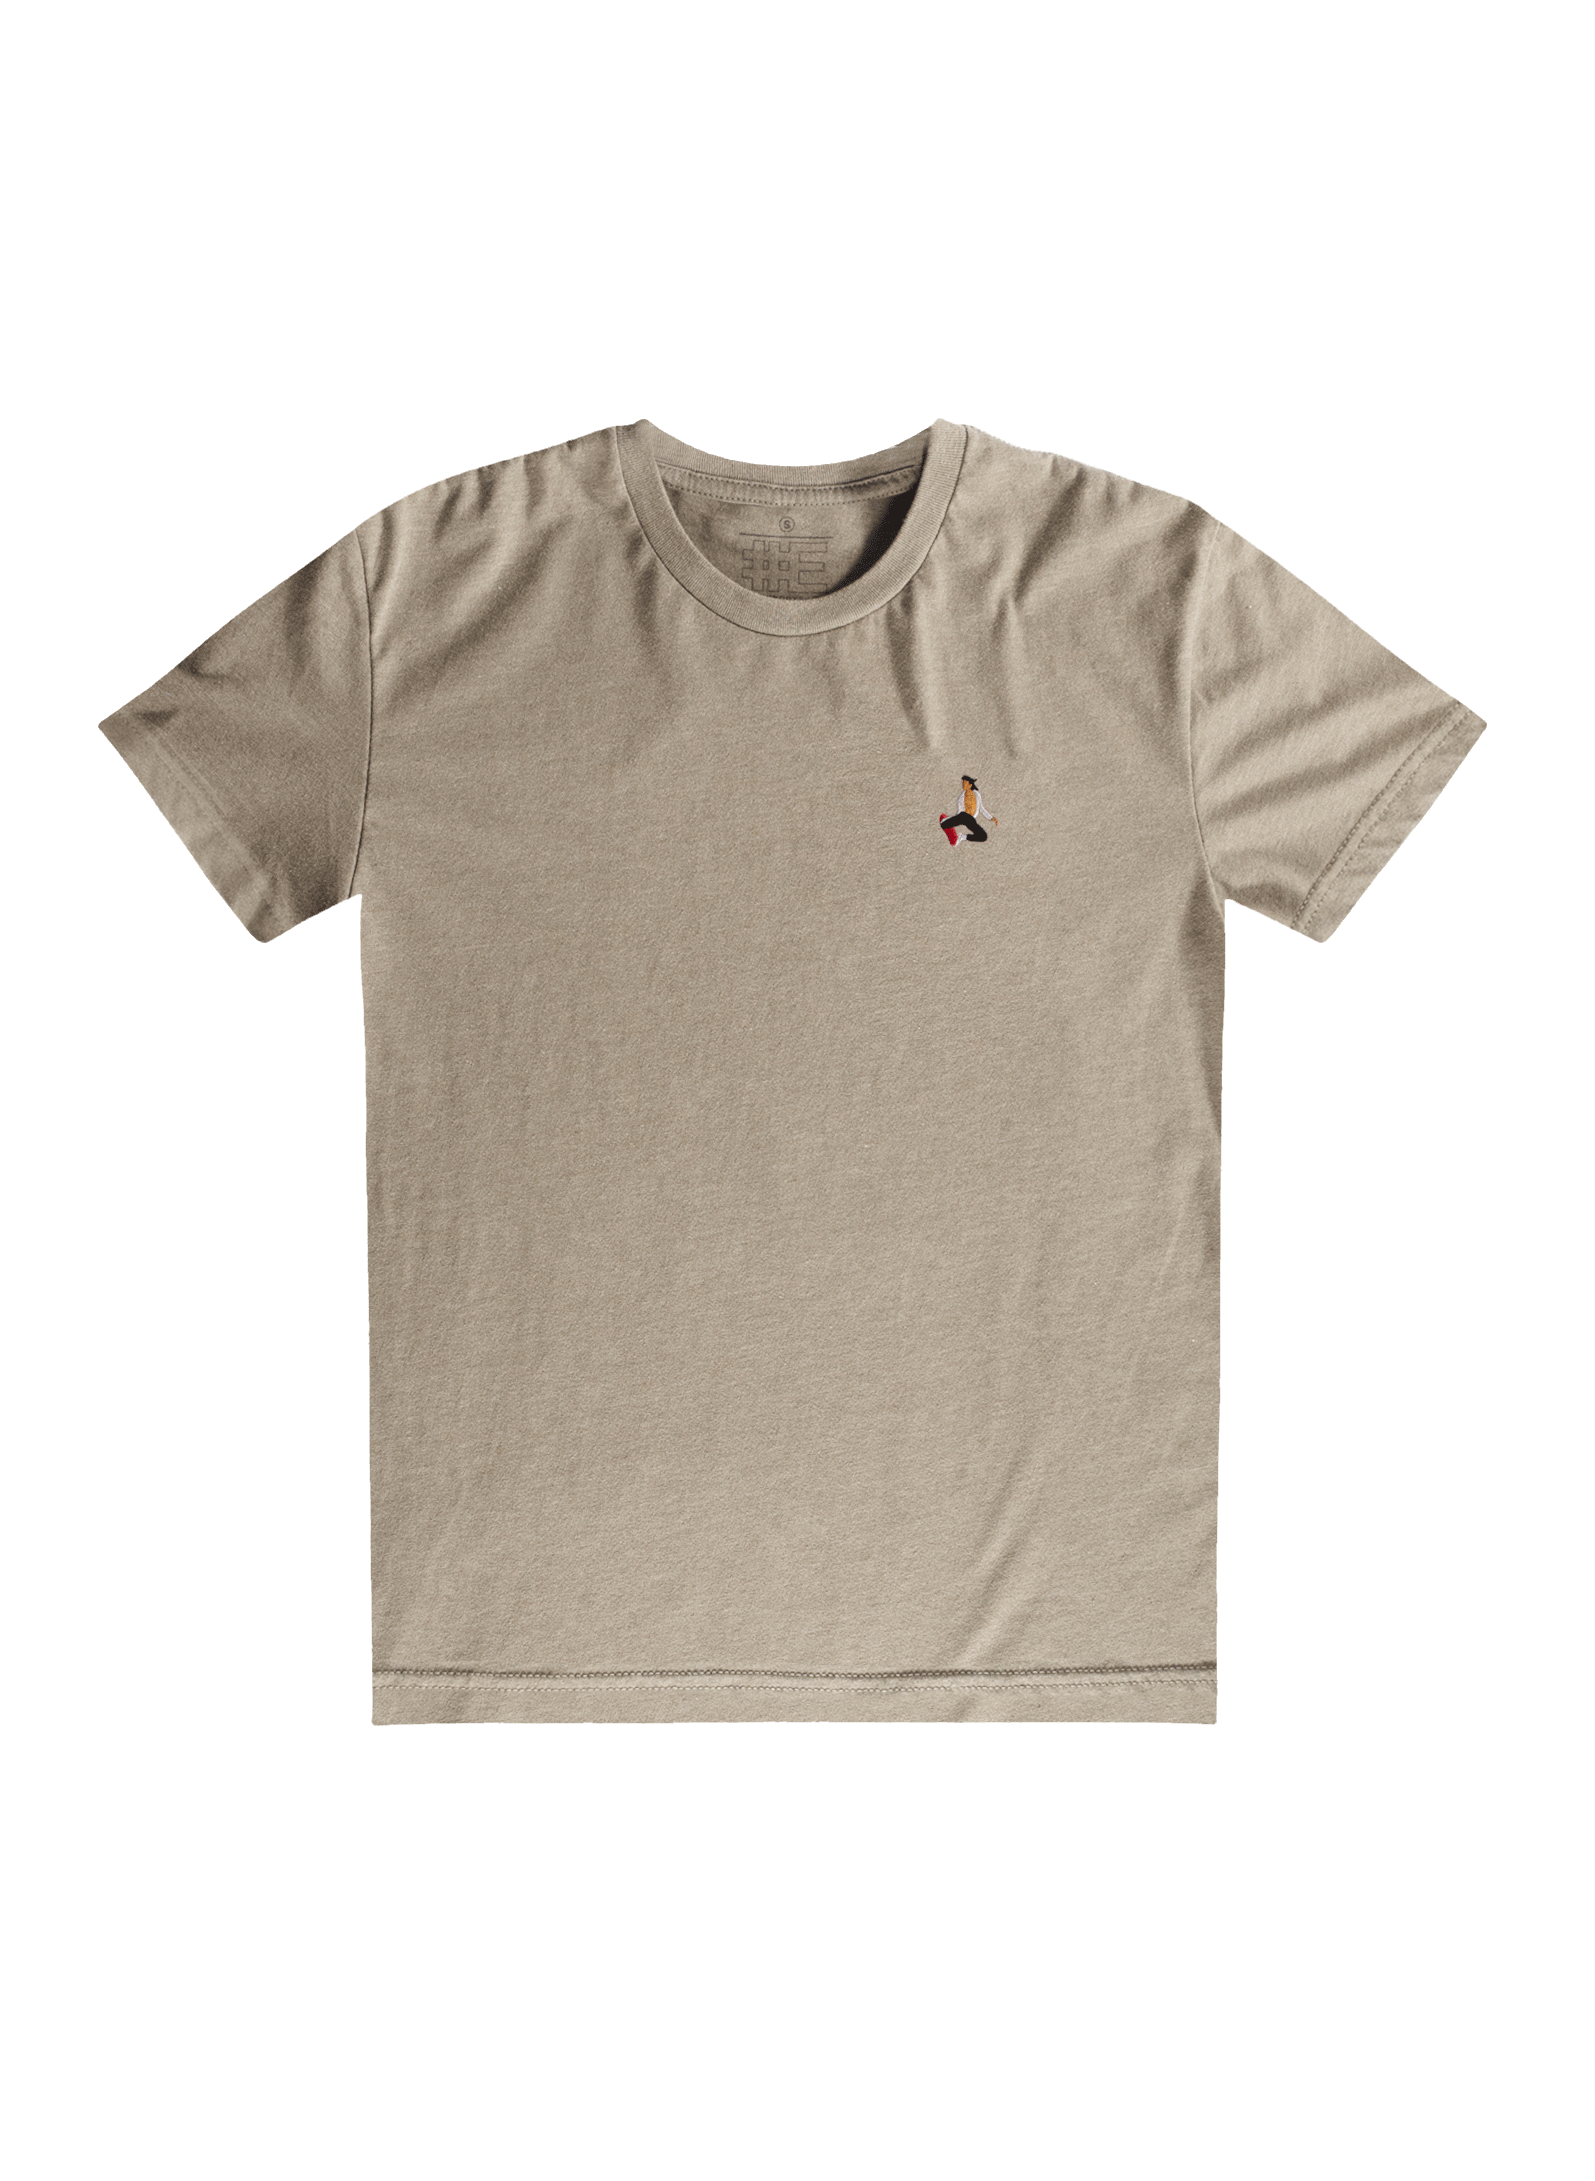 Method Embroidered Tee